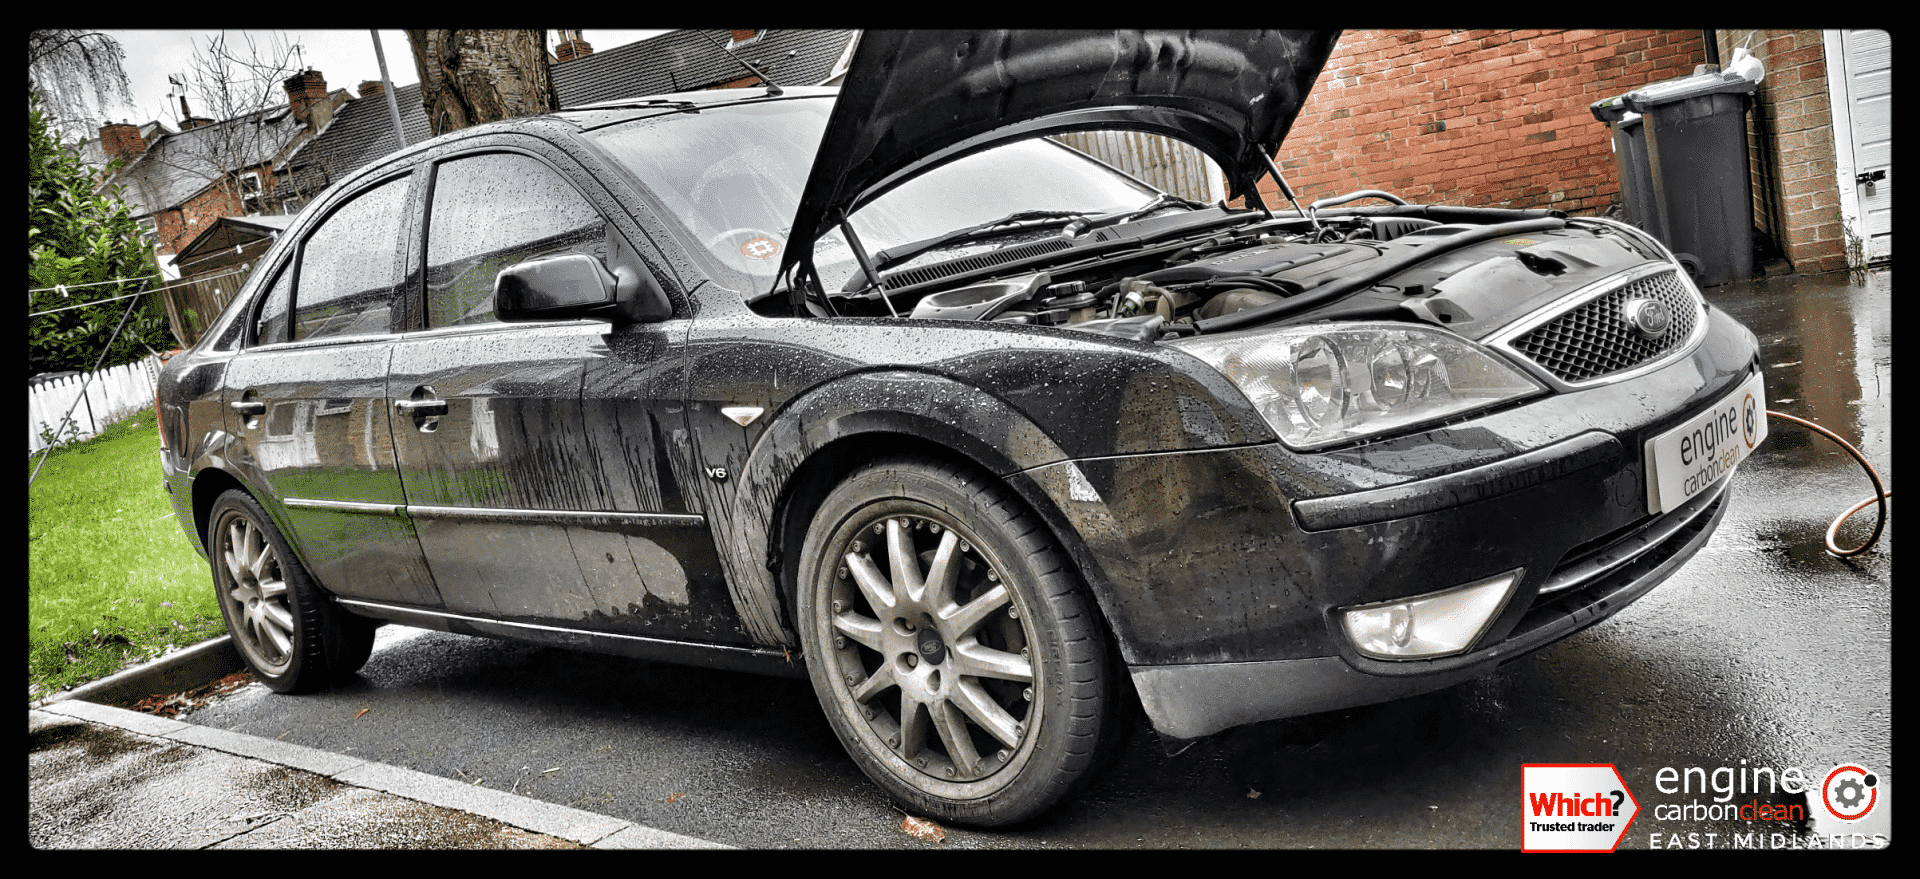 Diagnostic consultation and Engine Carbon Clean - Ford Mondeo 2.5 petrol (2004 - 137,669 miles)